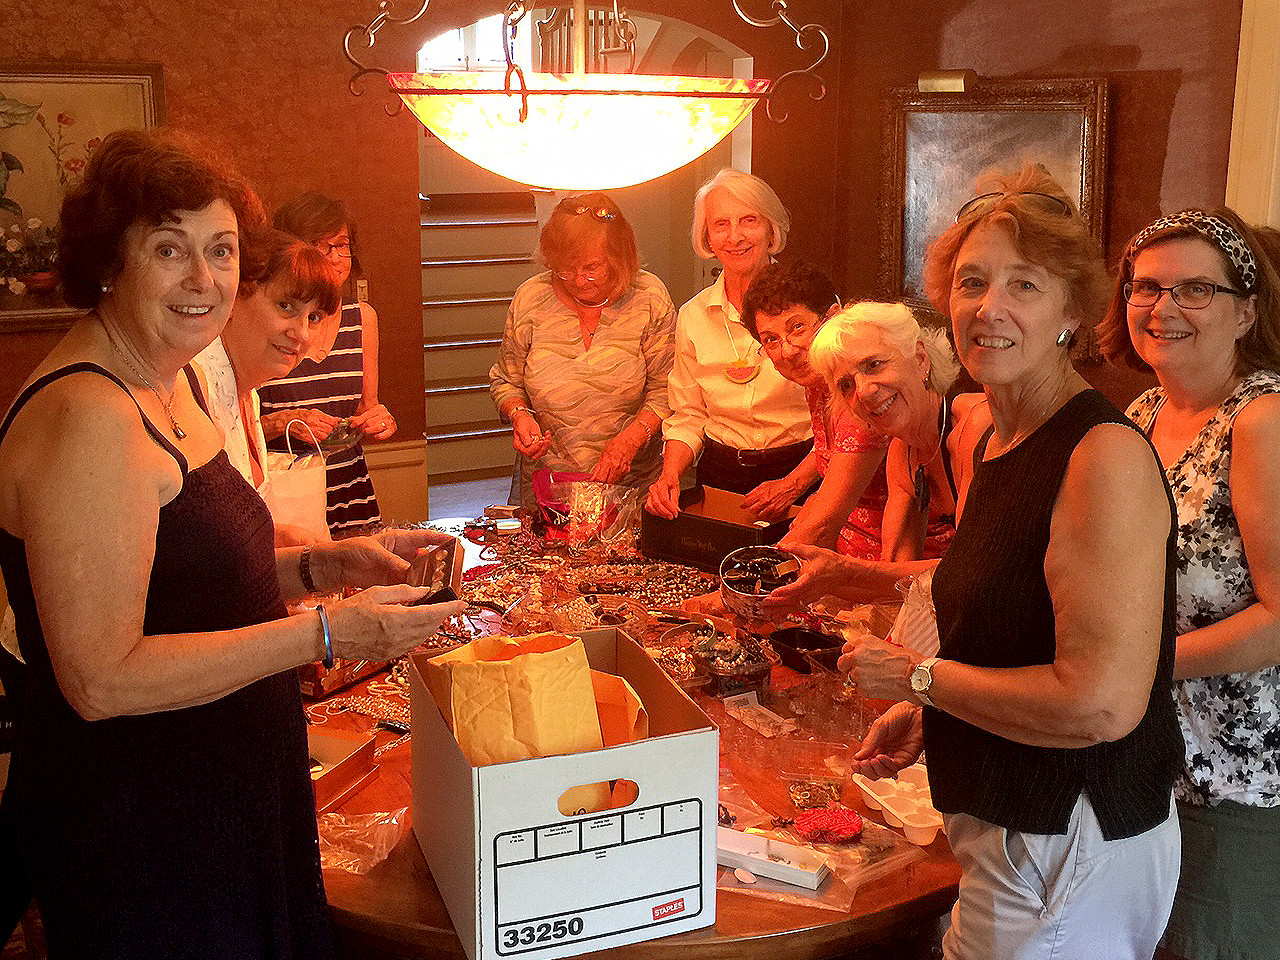 (above) Members of the Friends of the Summit Free Public Library sort through jewelry donations at the home of former Mayor Ellen Dickson for their upcoming sale. Sheila Bonnell (far right) and Ellen Dickson are Co-Chairs for the sale.